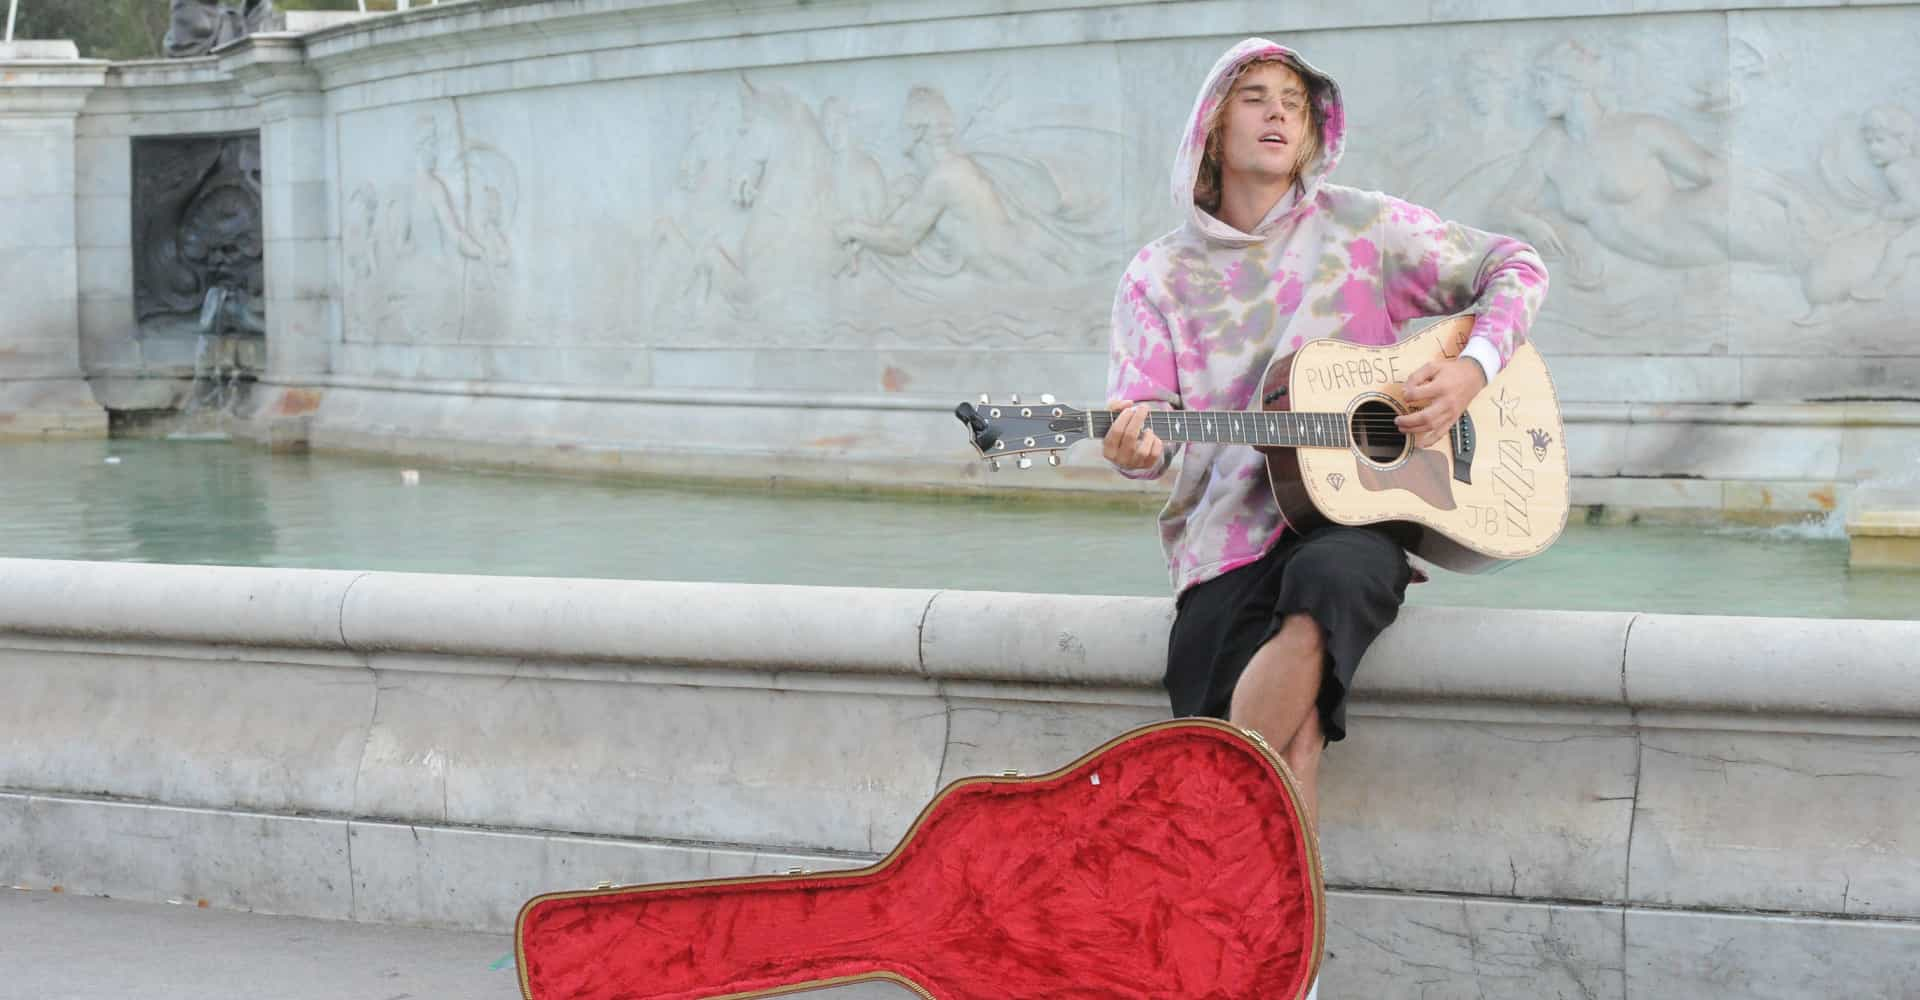 Justin Bieber took to London streets to serenade fans